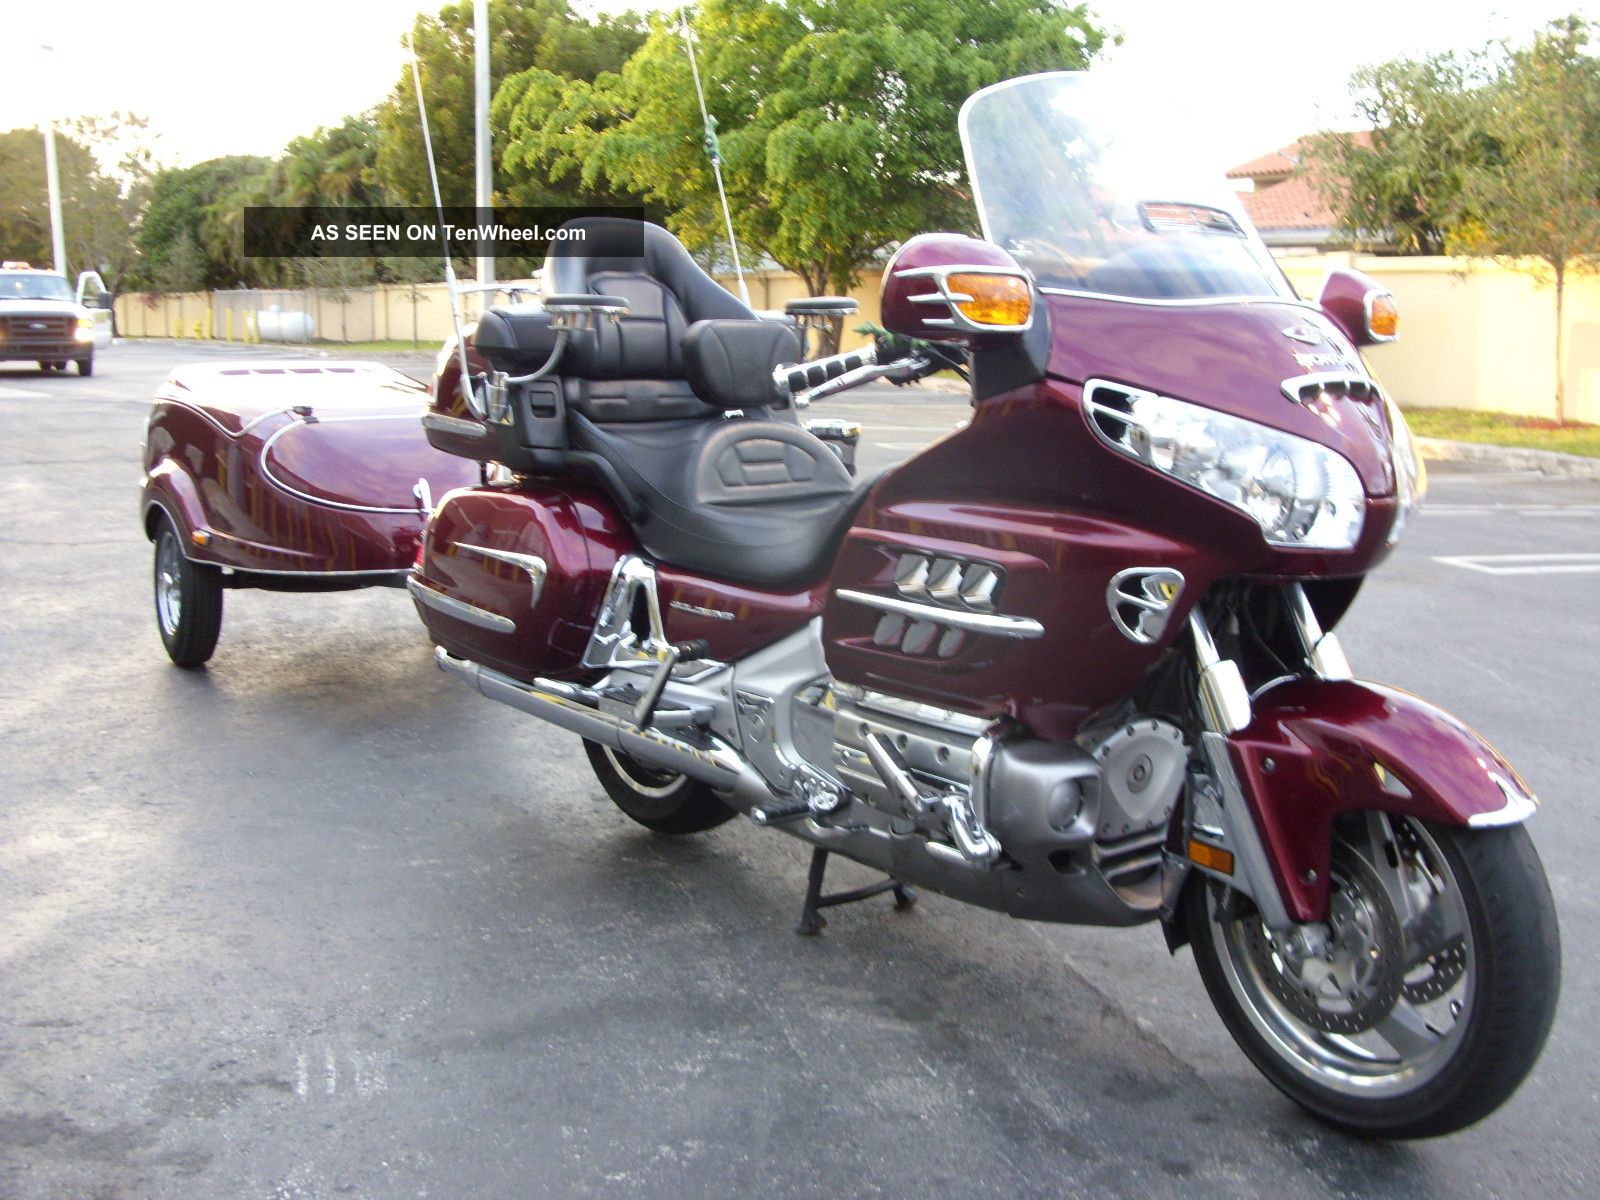 Honda GL 1800 Gold Wing images #82726